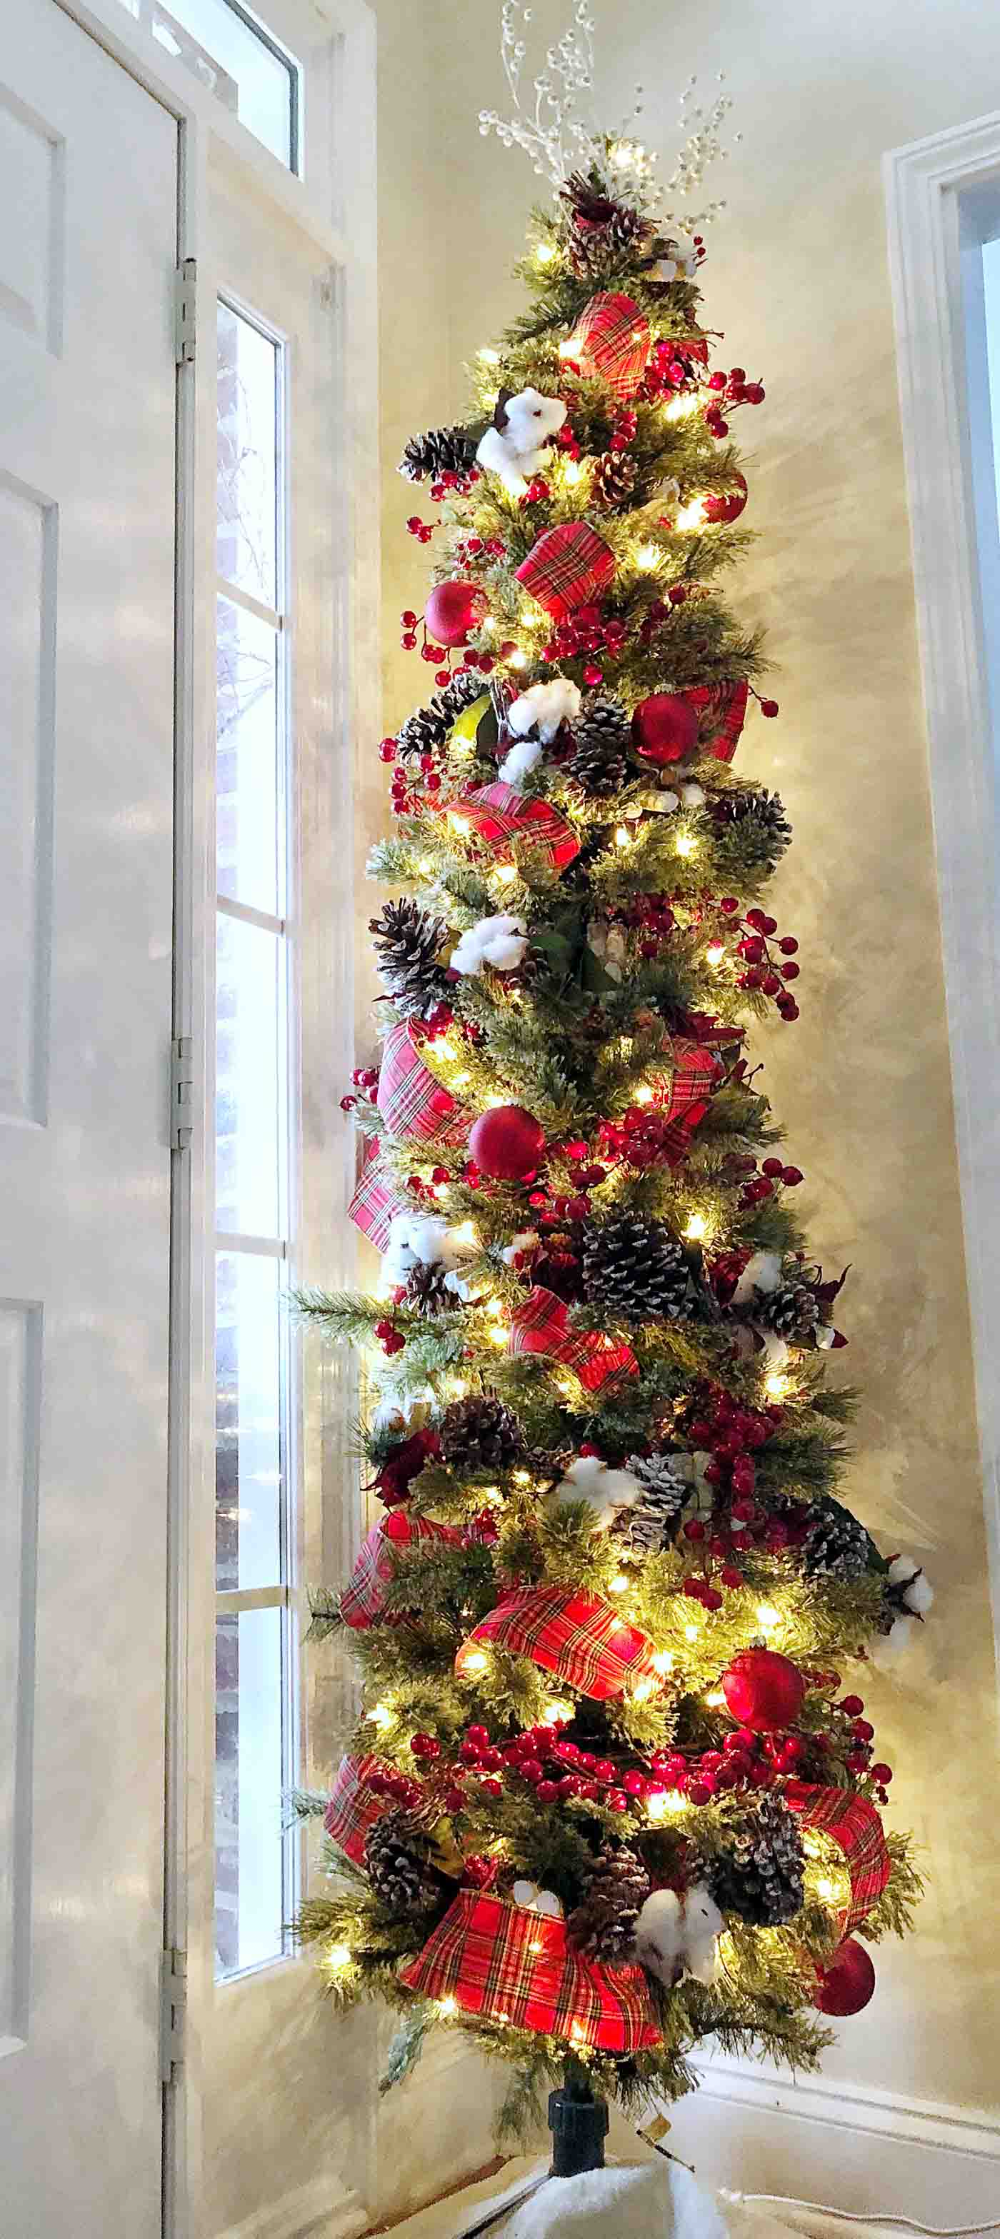 50 Reader Christmas Tree Beauties You've Gotta See! -   18 christmas tree themed ideas